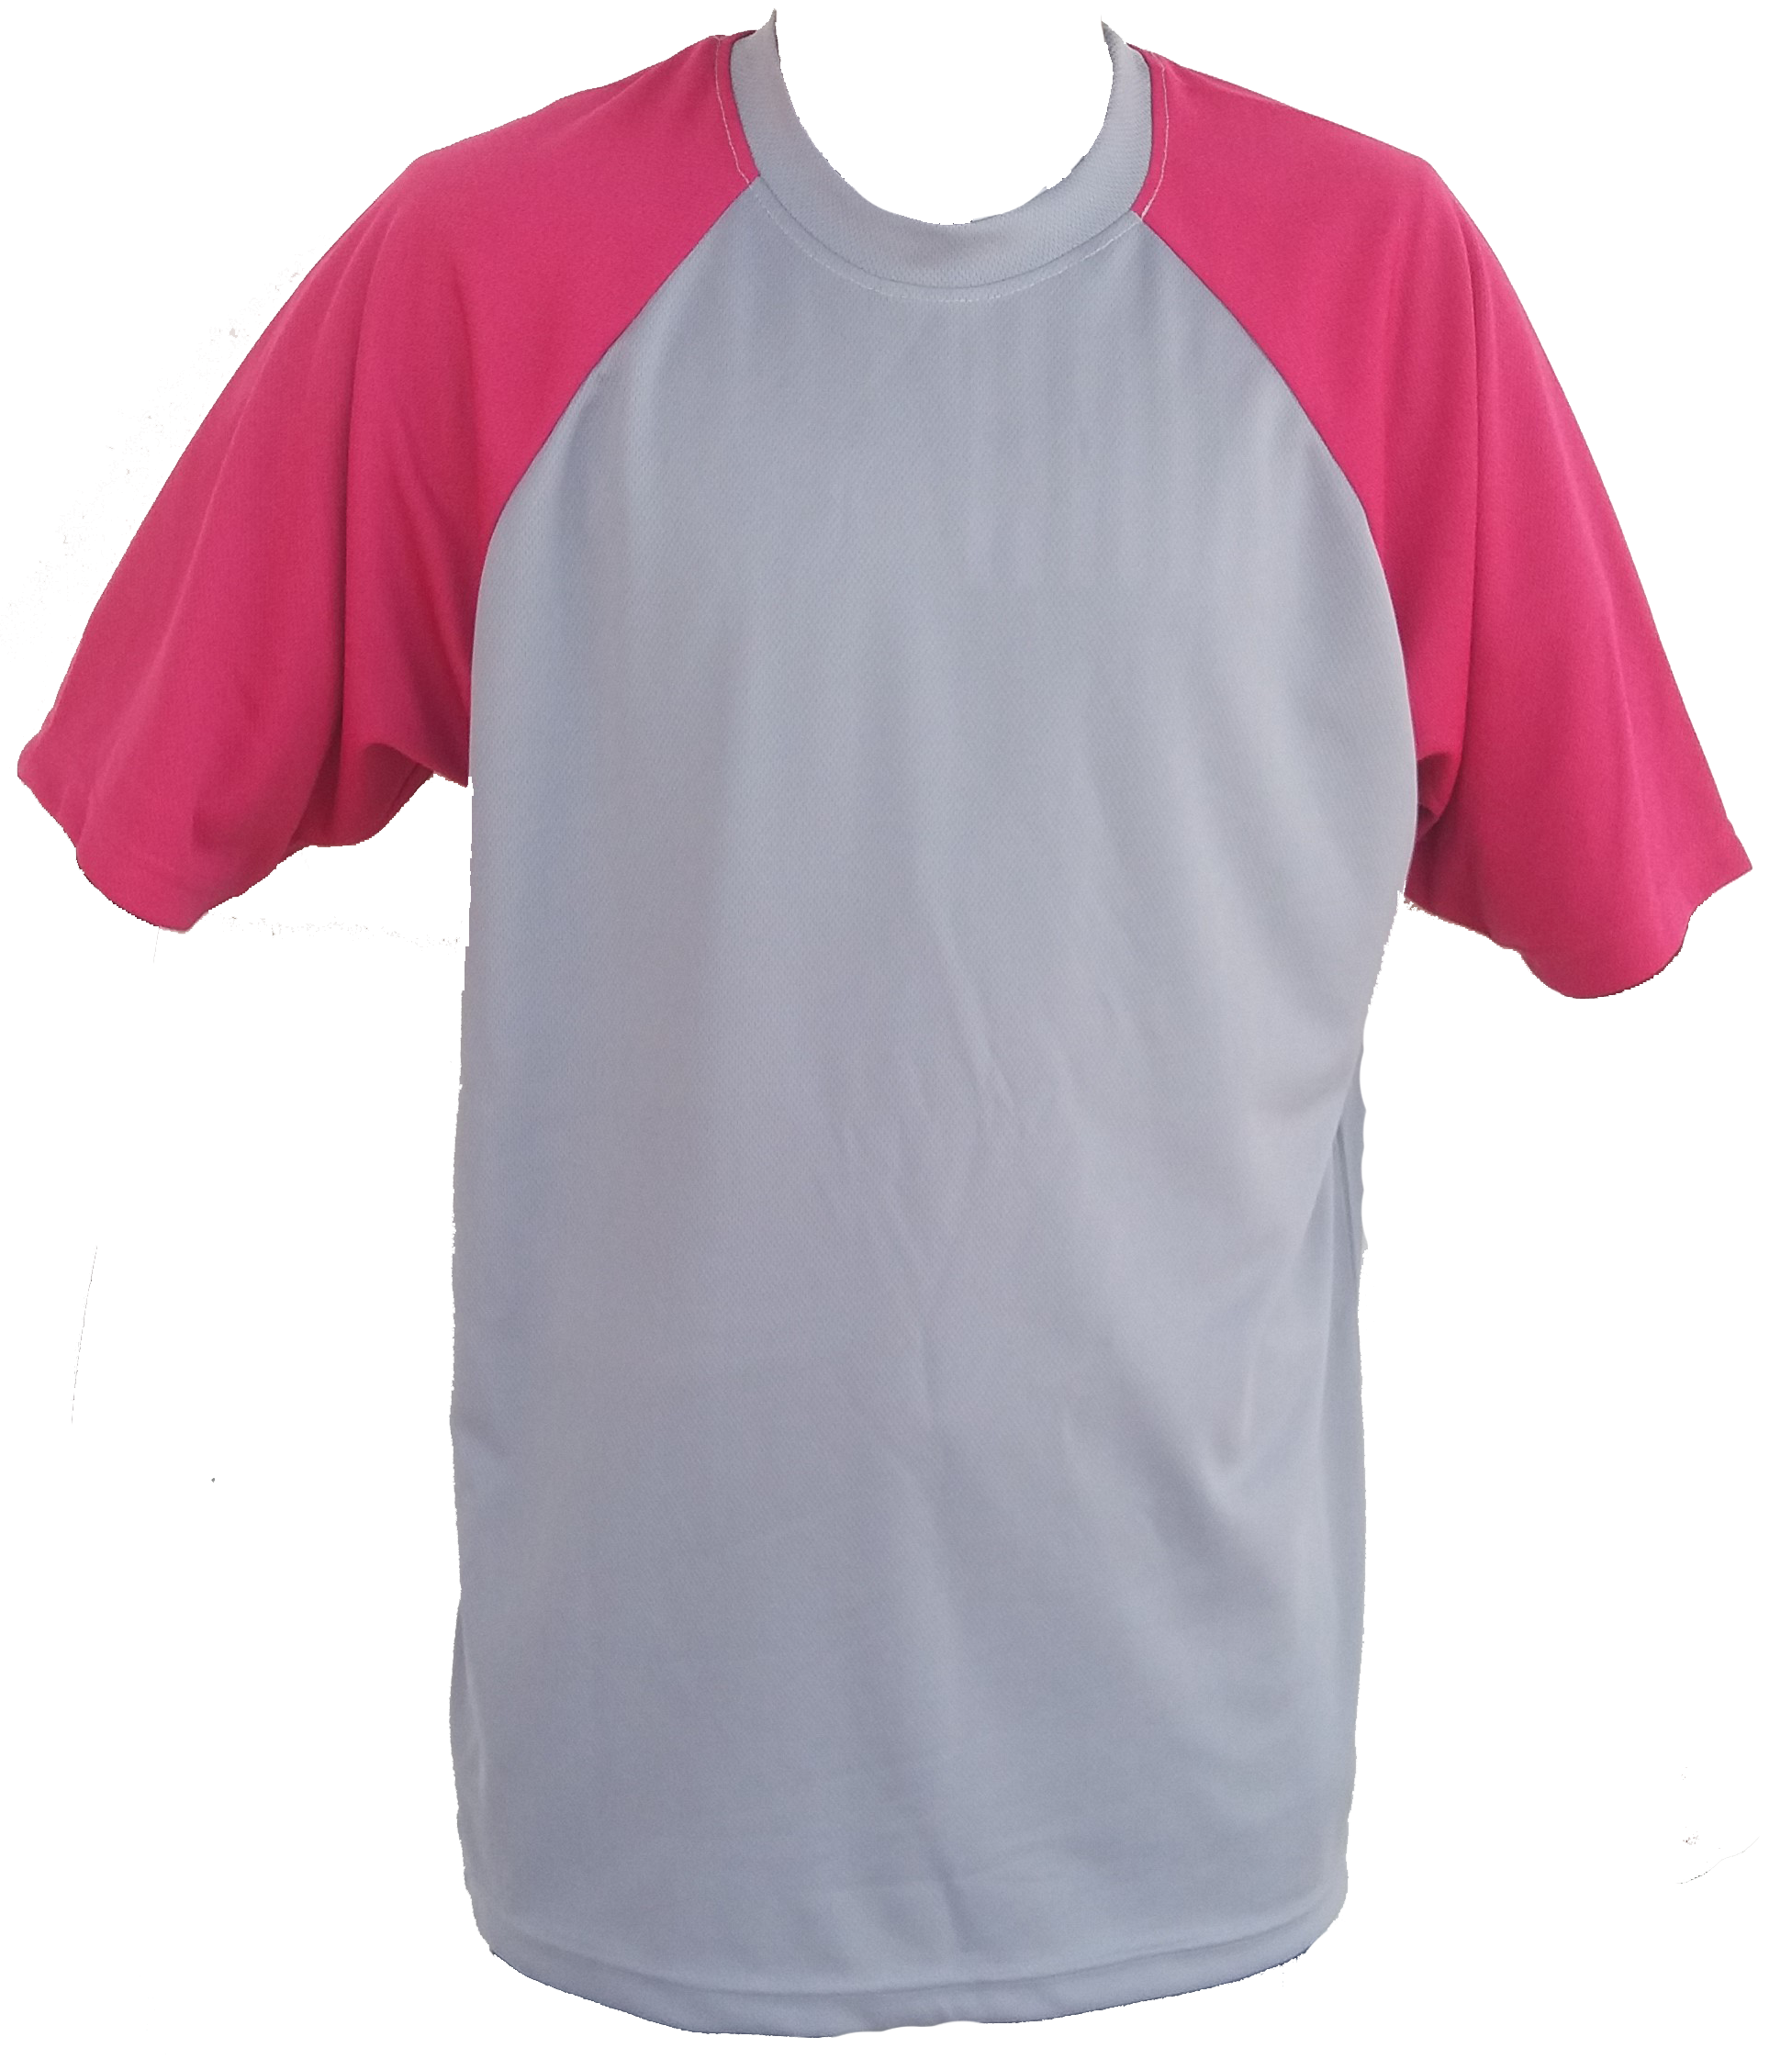 a05e6b926 T-shirt Wholesaler & Manufacturer - Quality T-shirt Supplier - plain ...